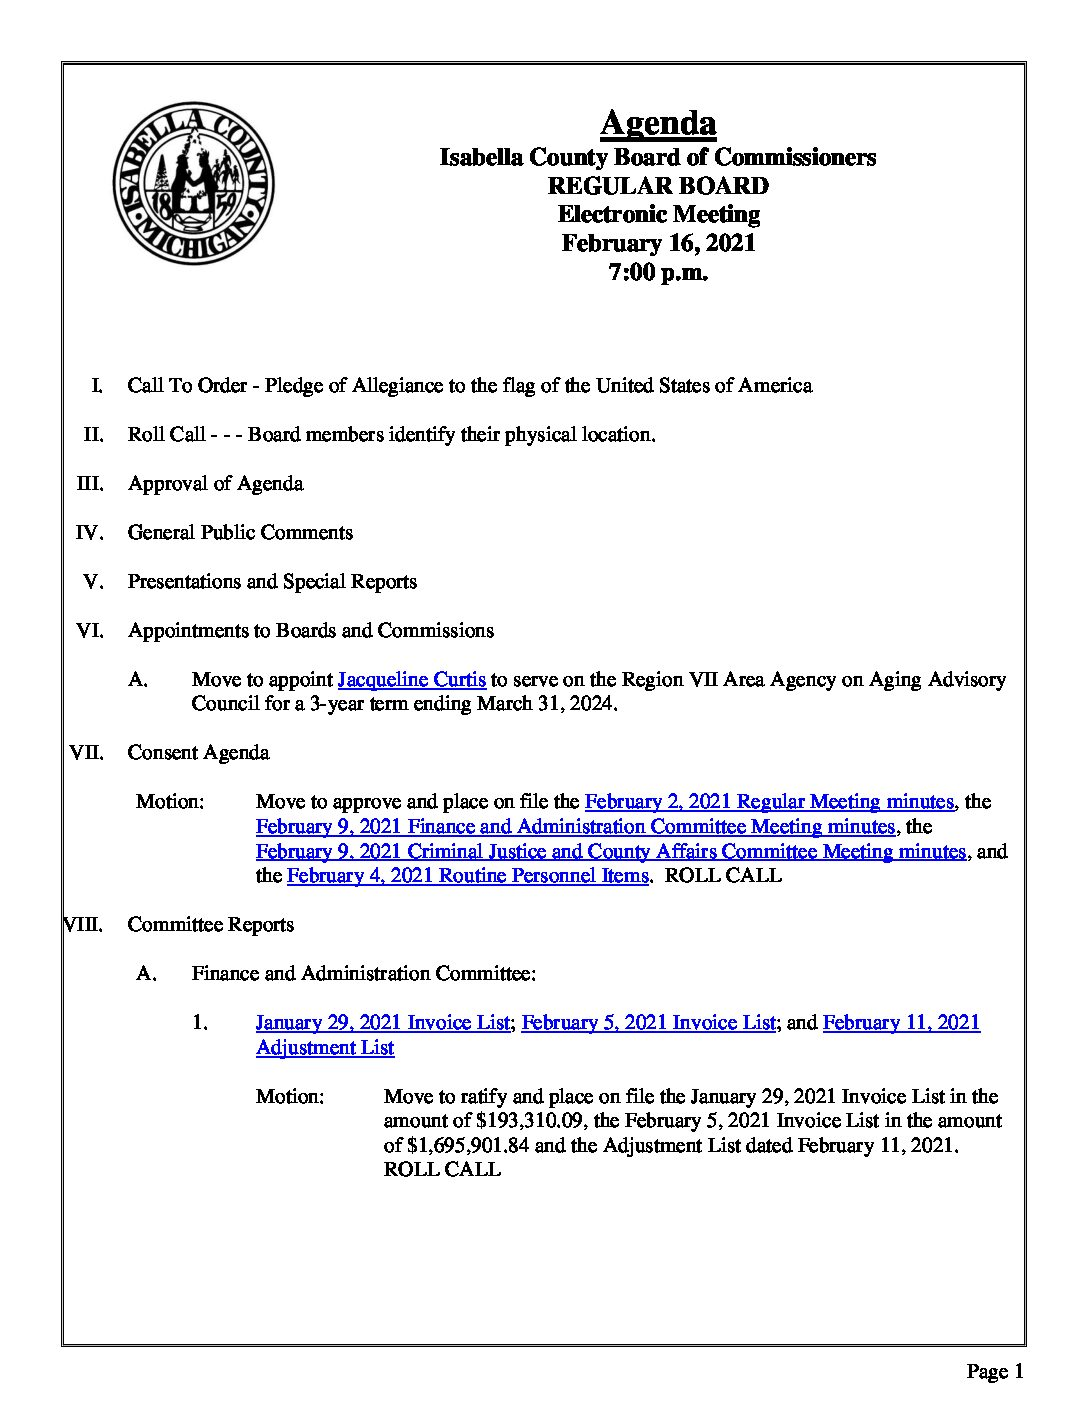 preview image of first page February 16, 2020 Agenda